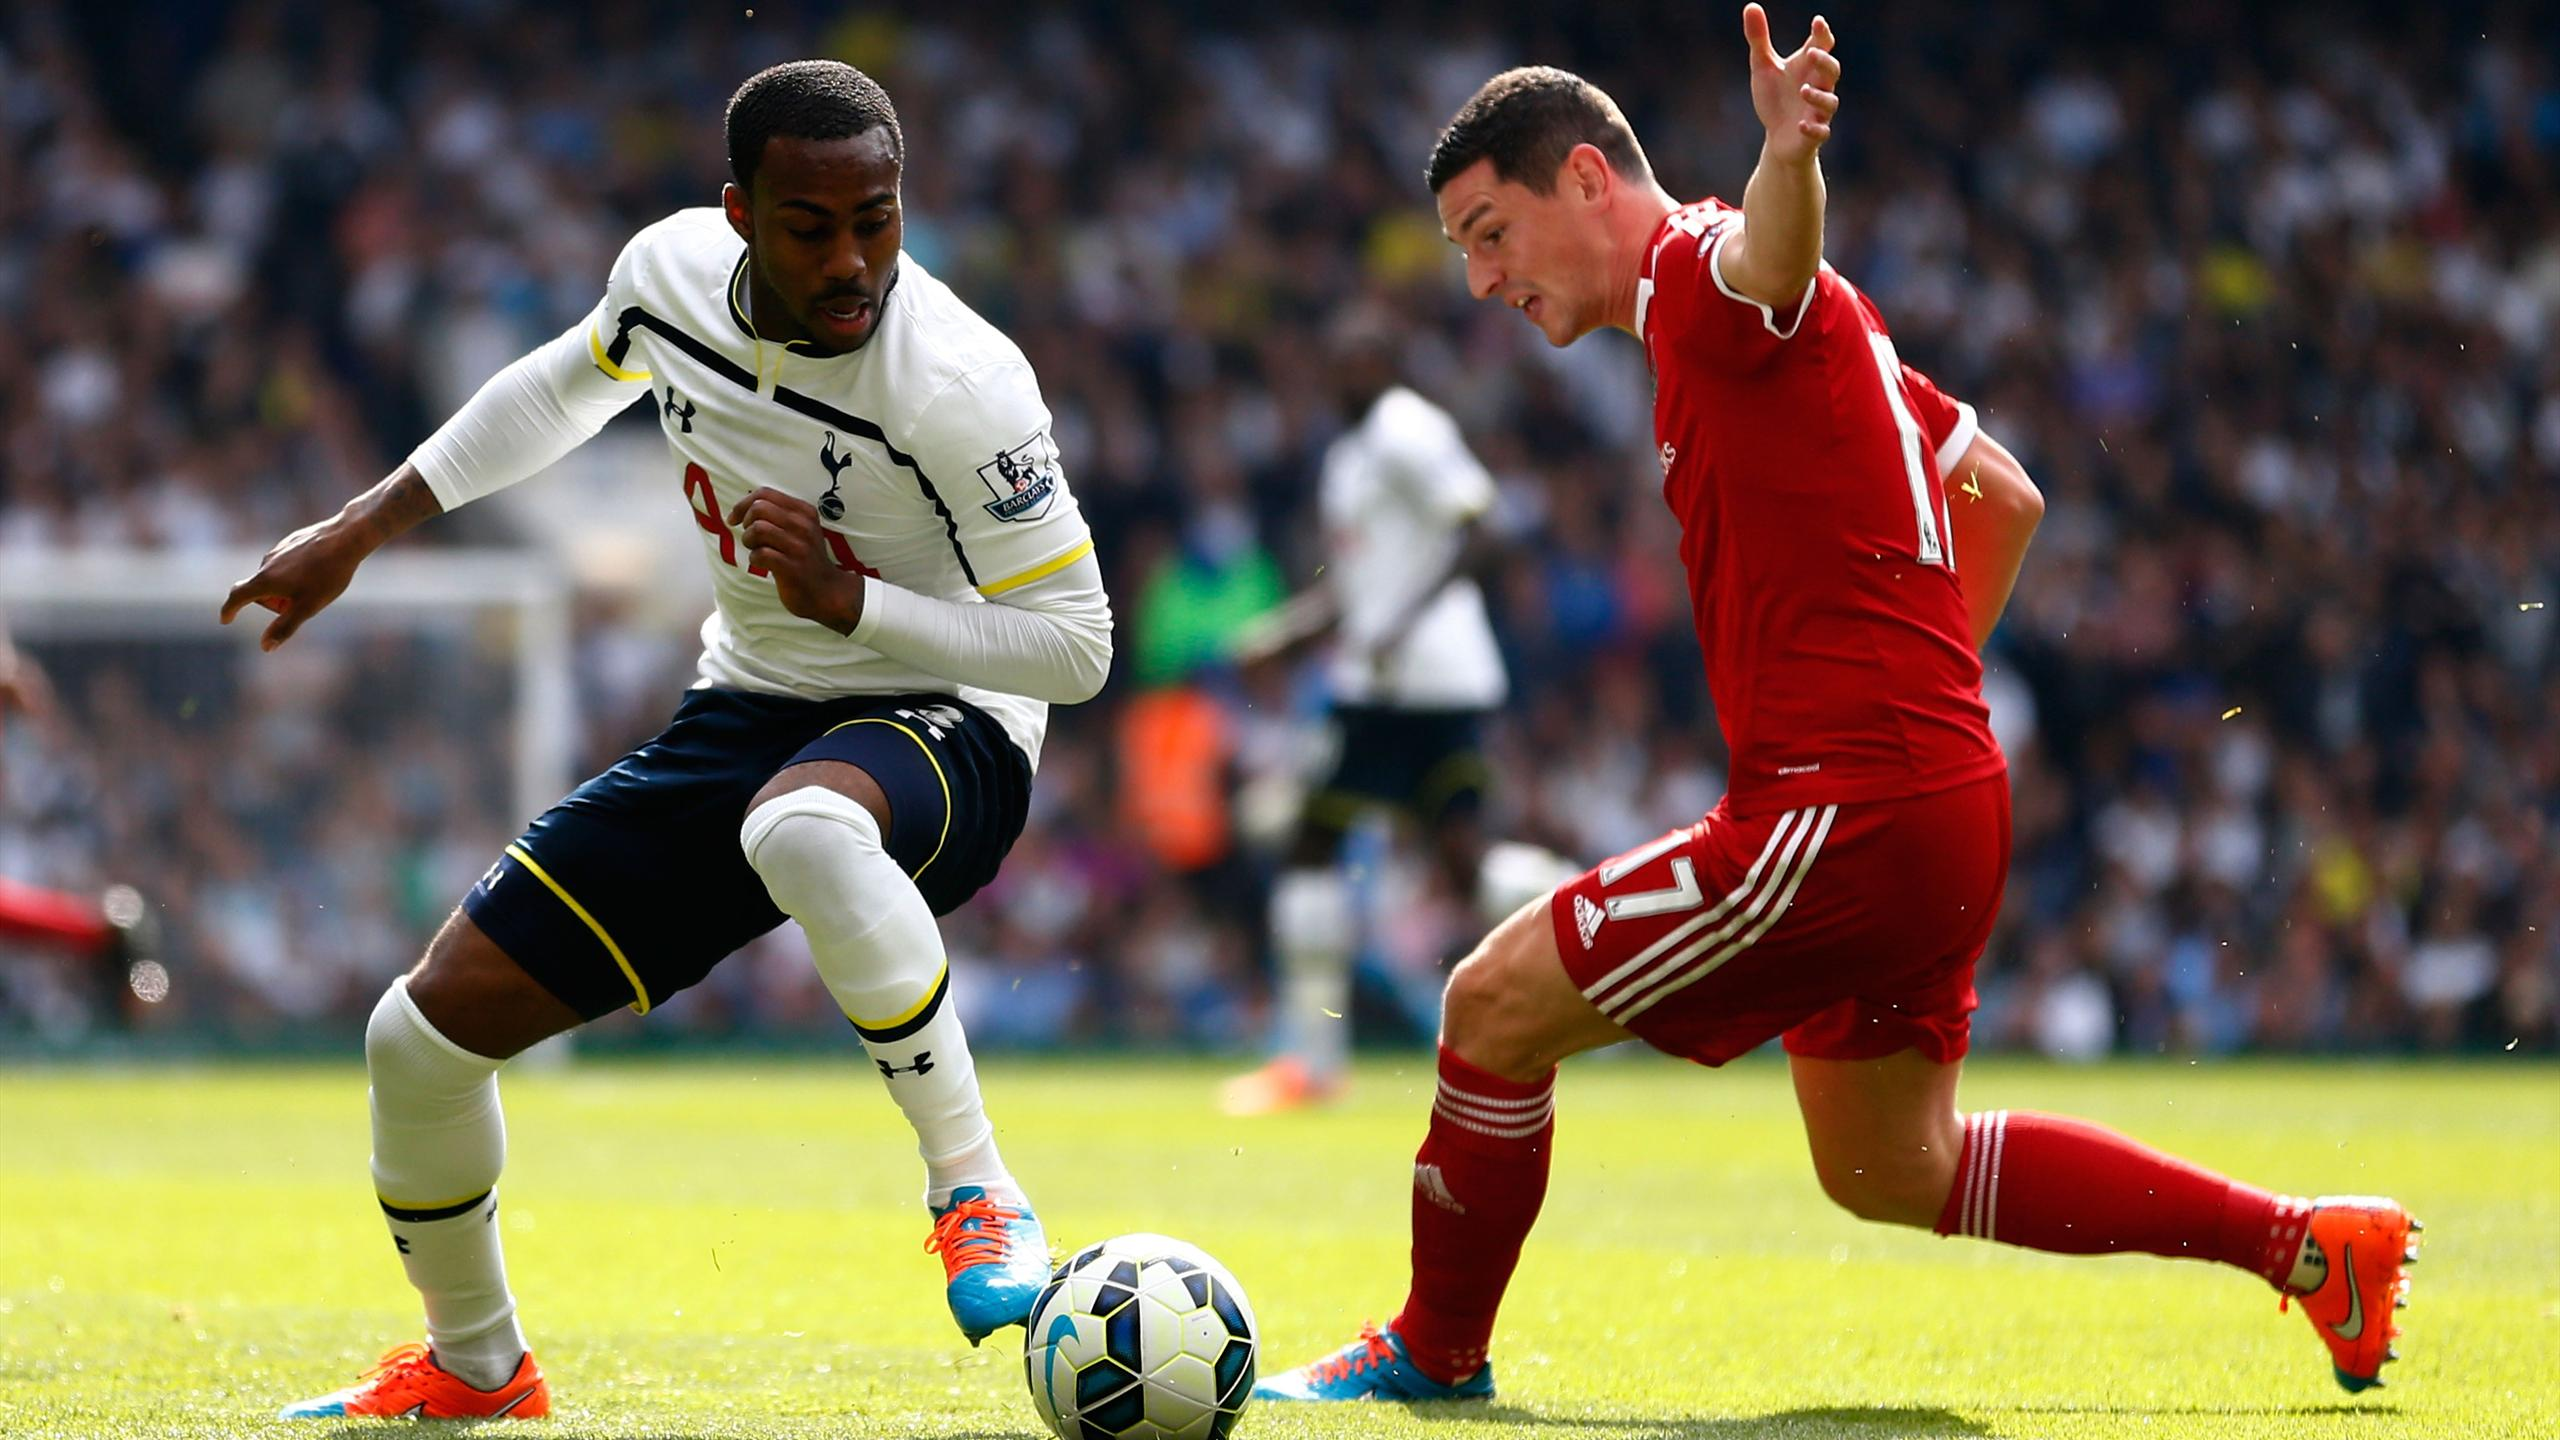 Video: Tottenham Hotspur vs West Bromwich Albion